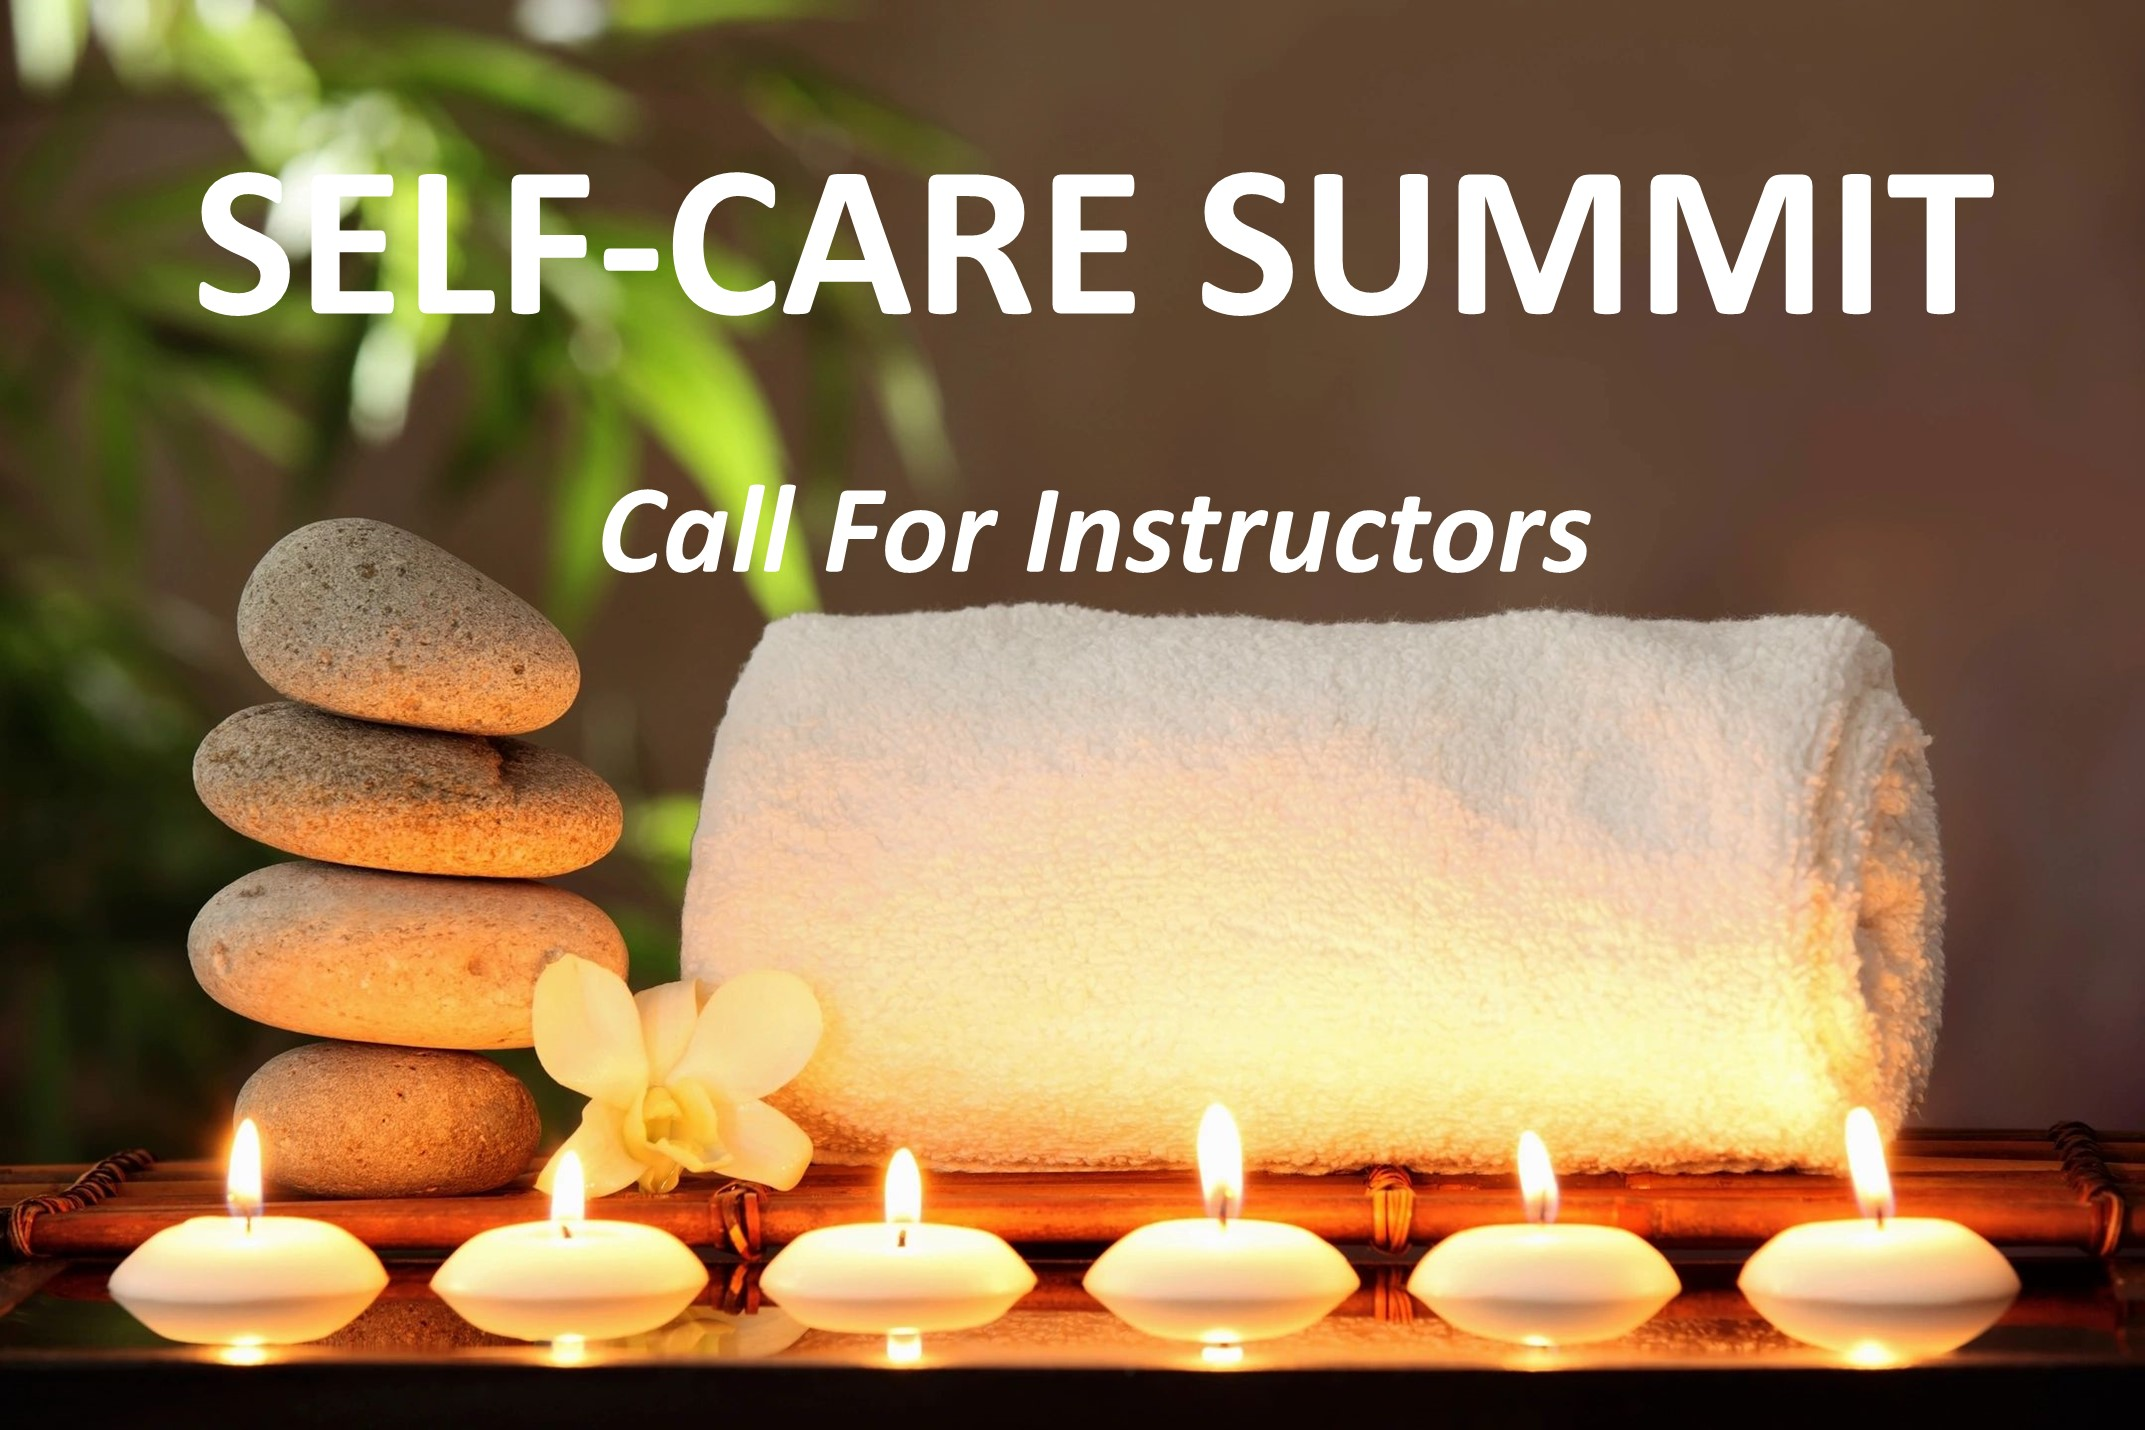 Self-Care Summit: CALL FOR INSTRUCTORS